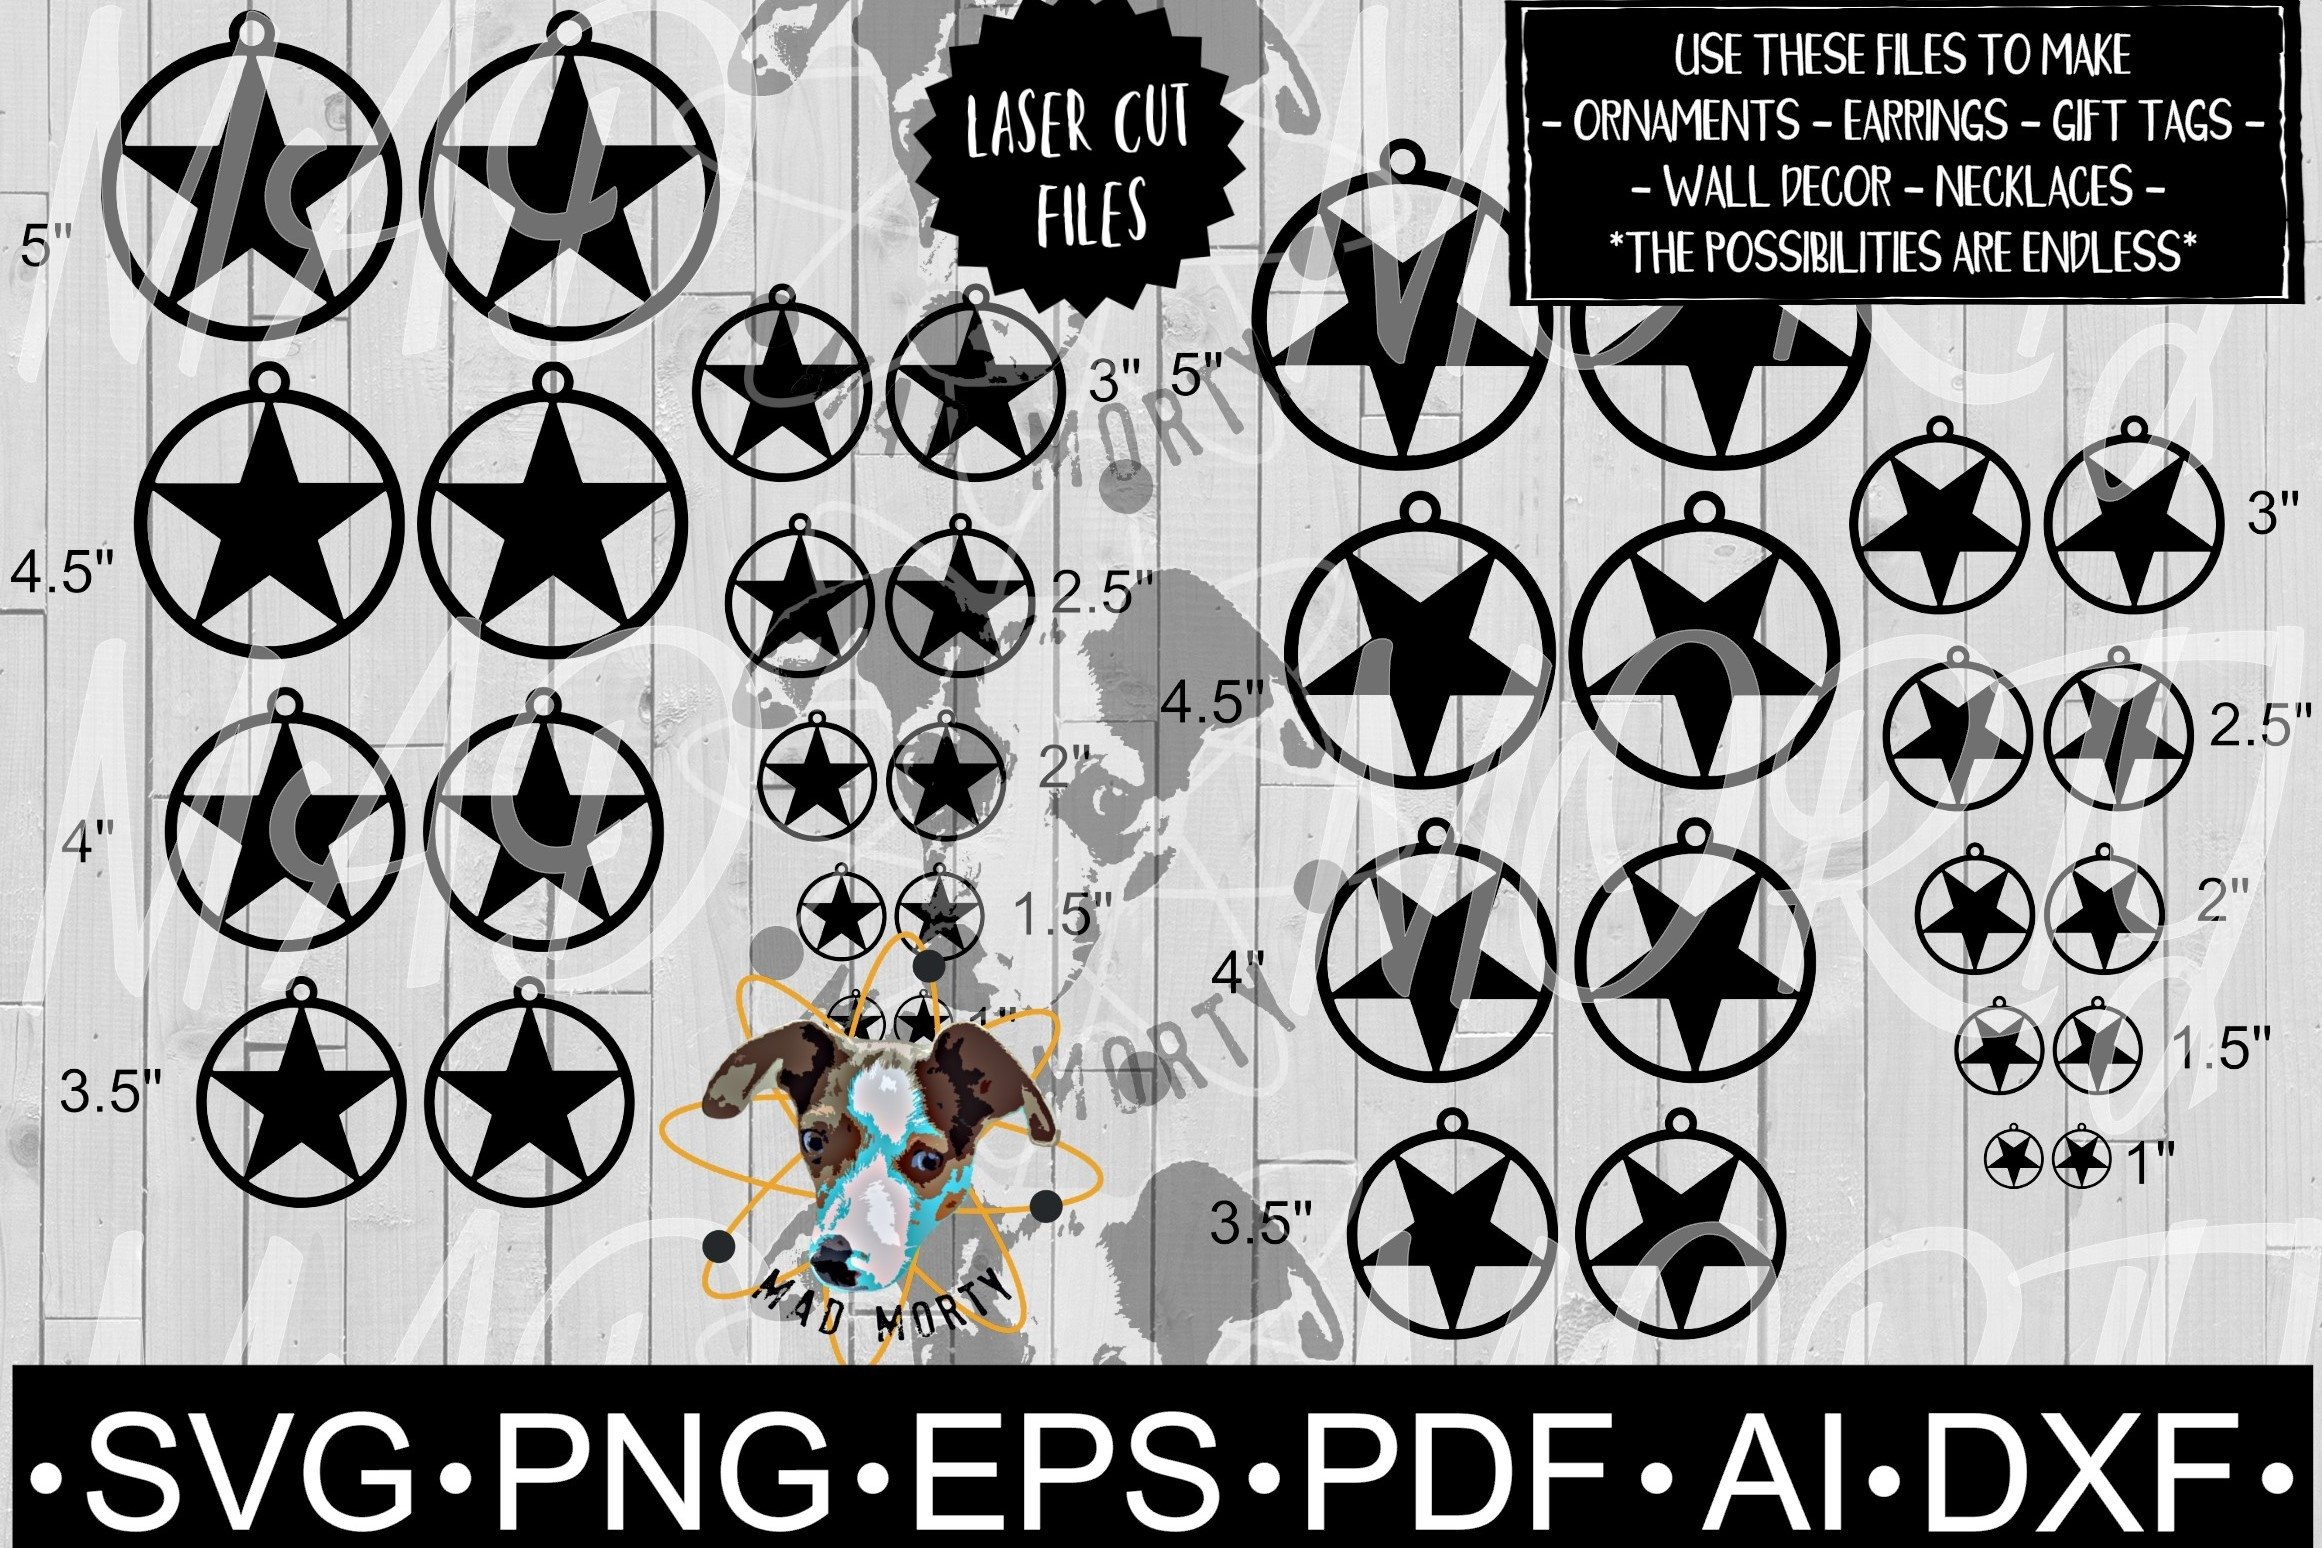 Revenge Of The Nerds Lambda SVG Clipart Silhouette and Cutfiles.